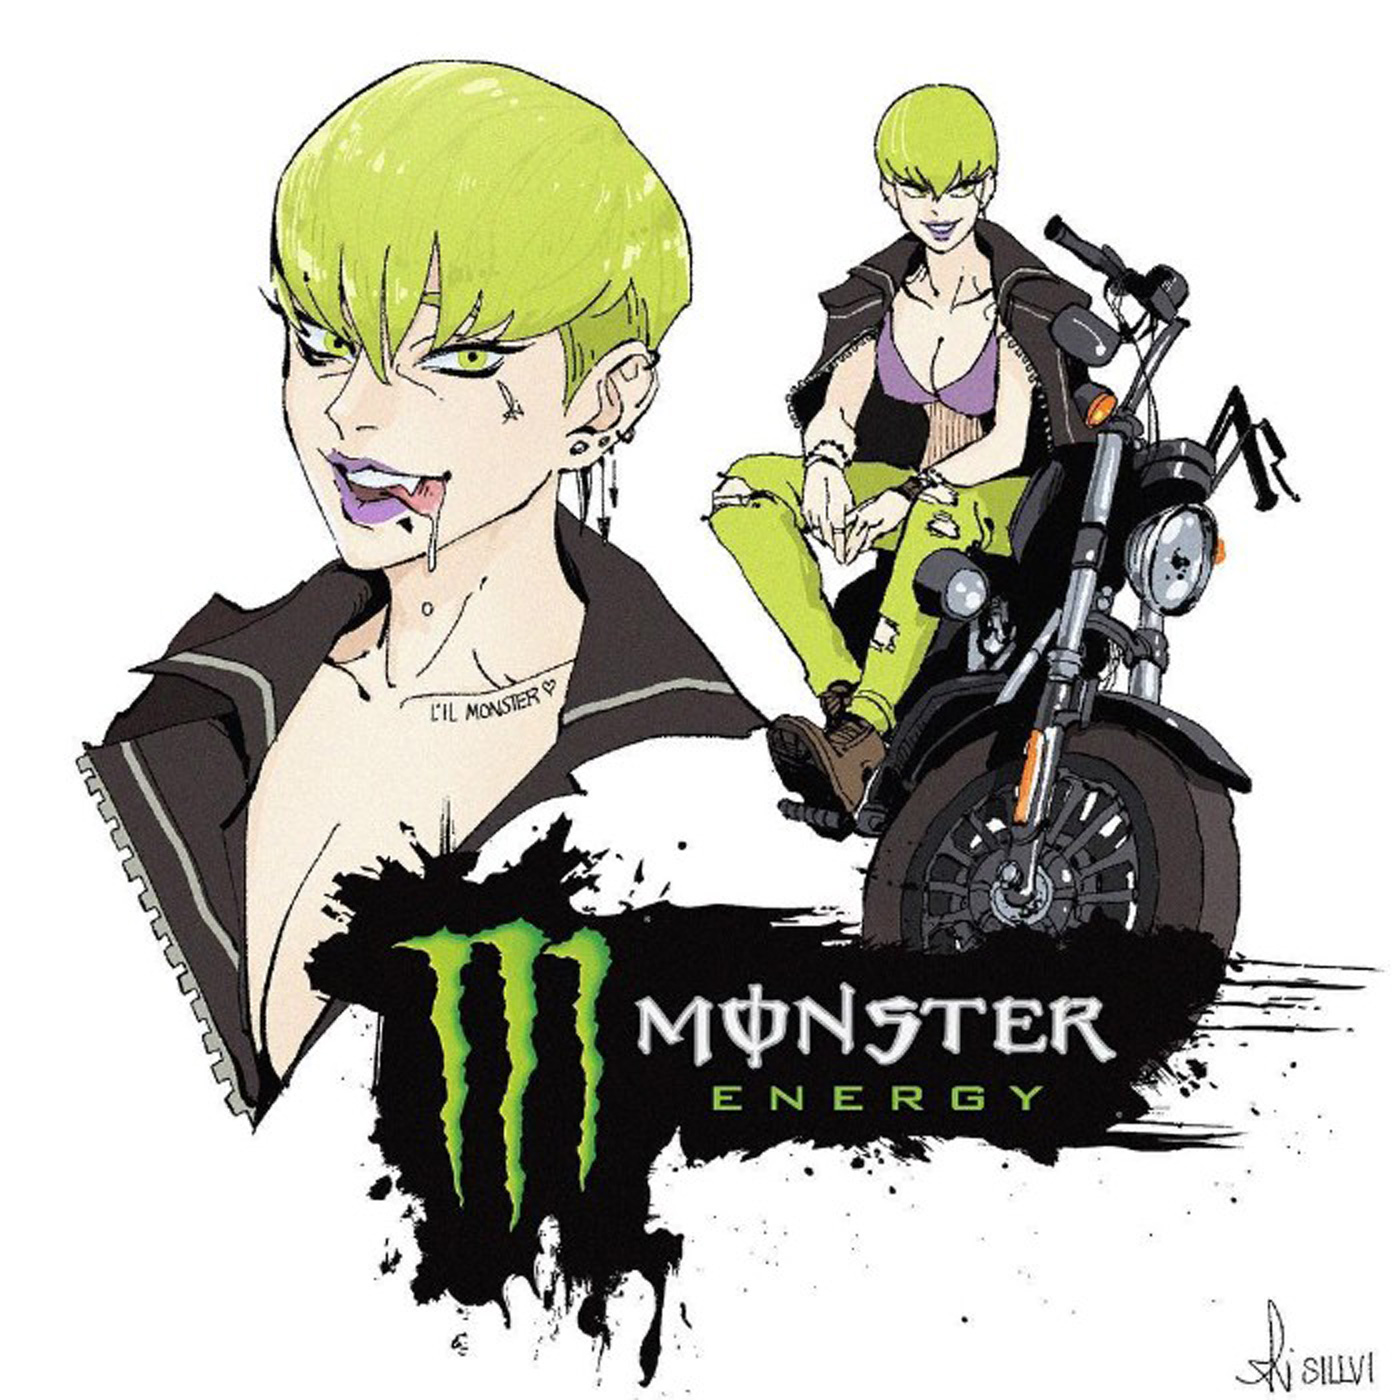 Illustrations of monster energy drink with Monster character